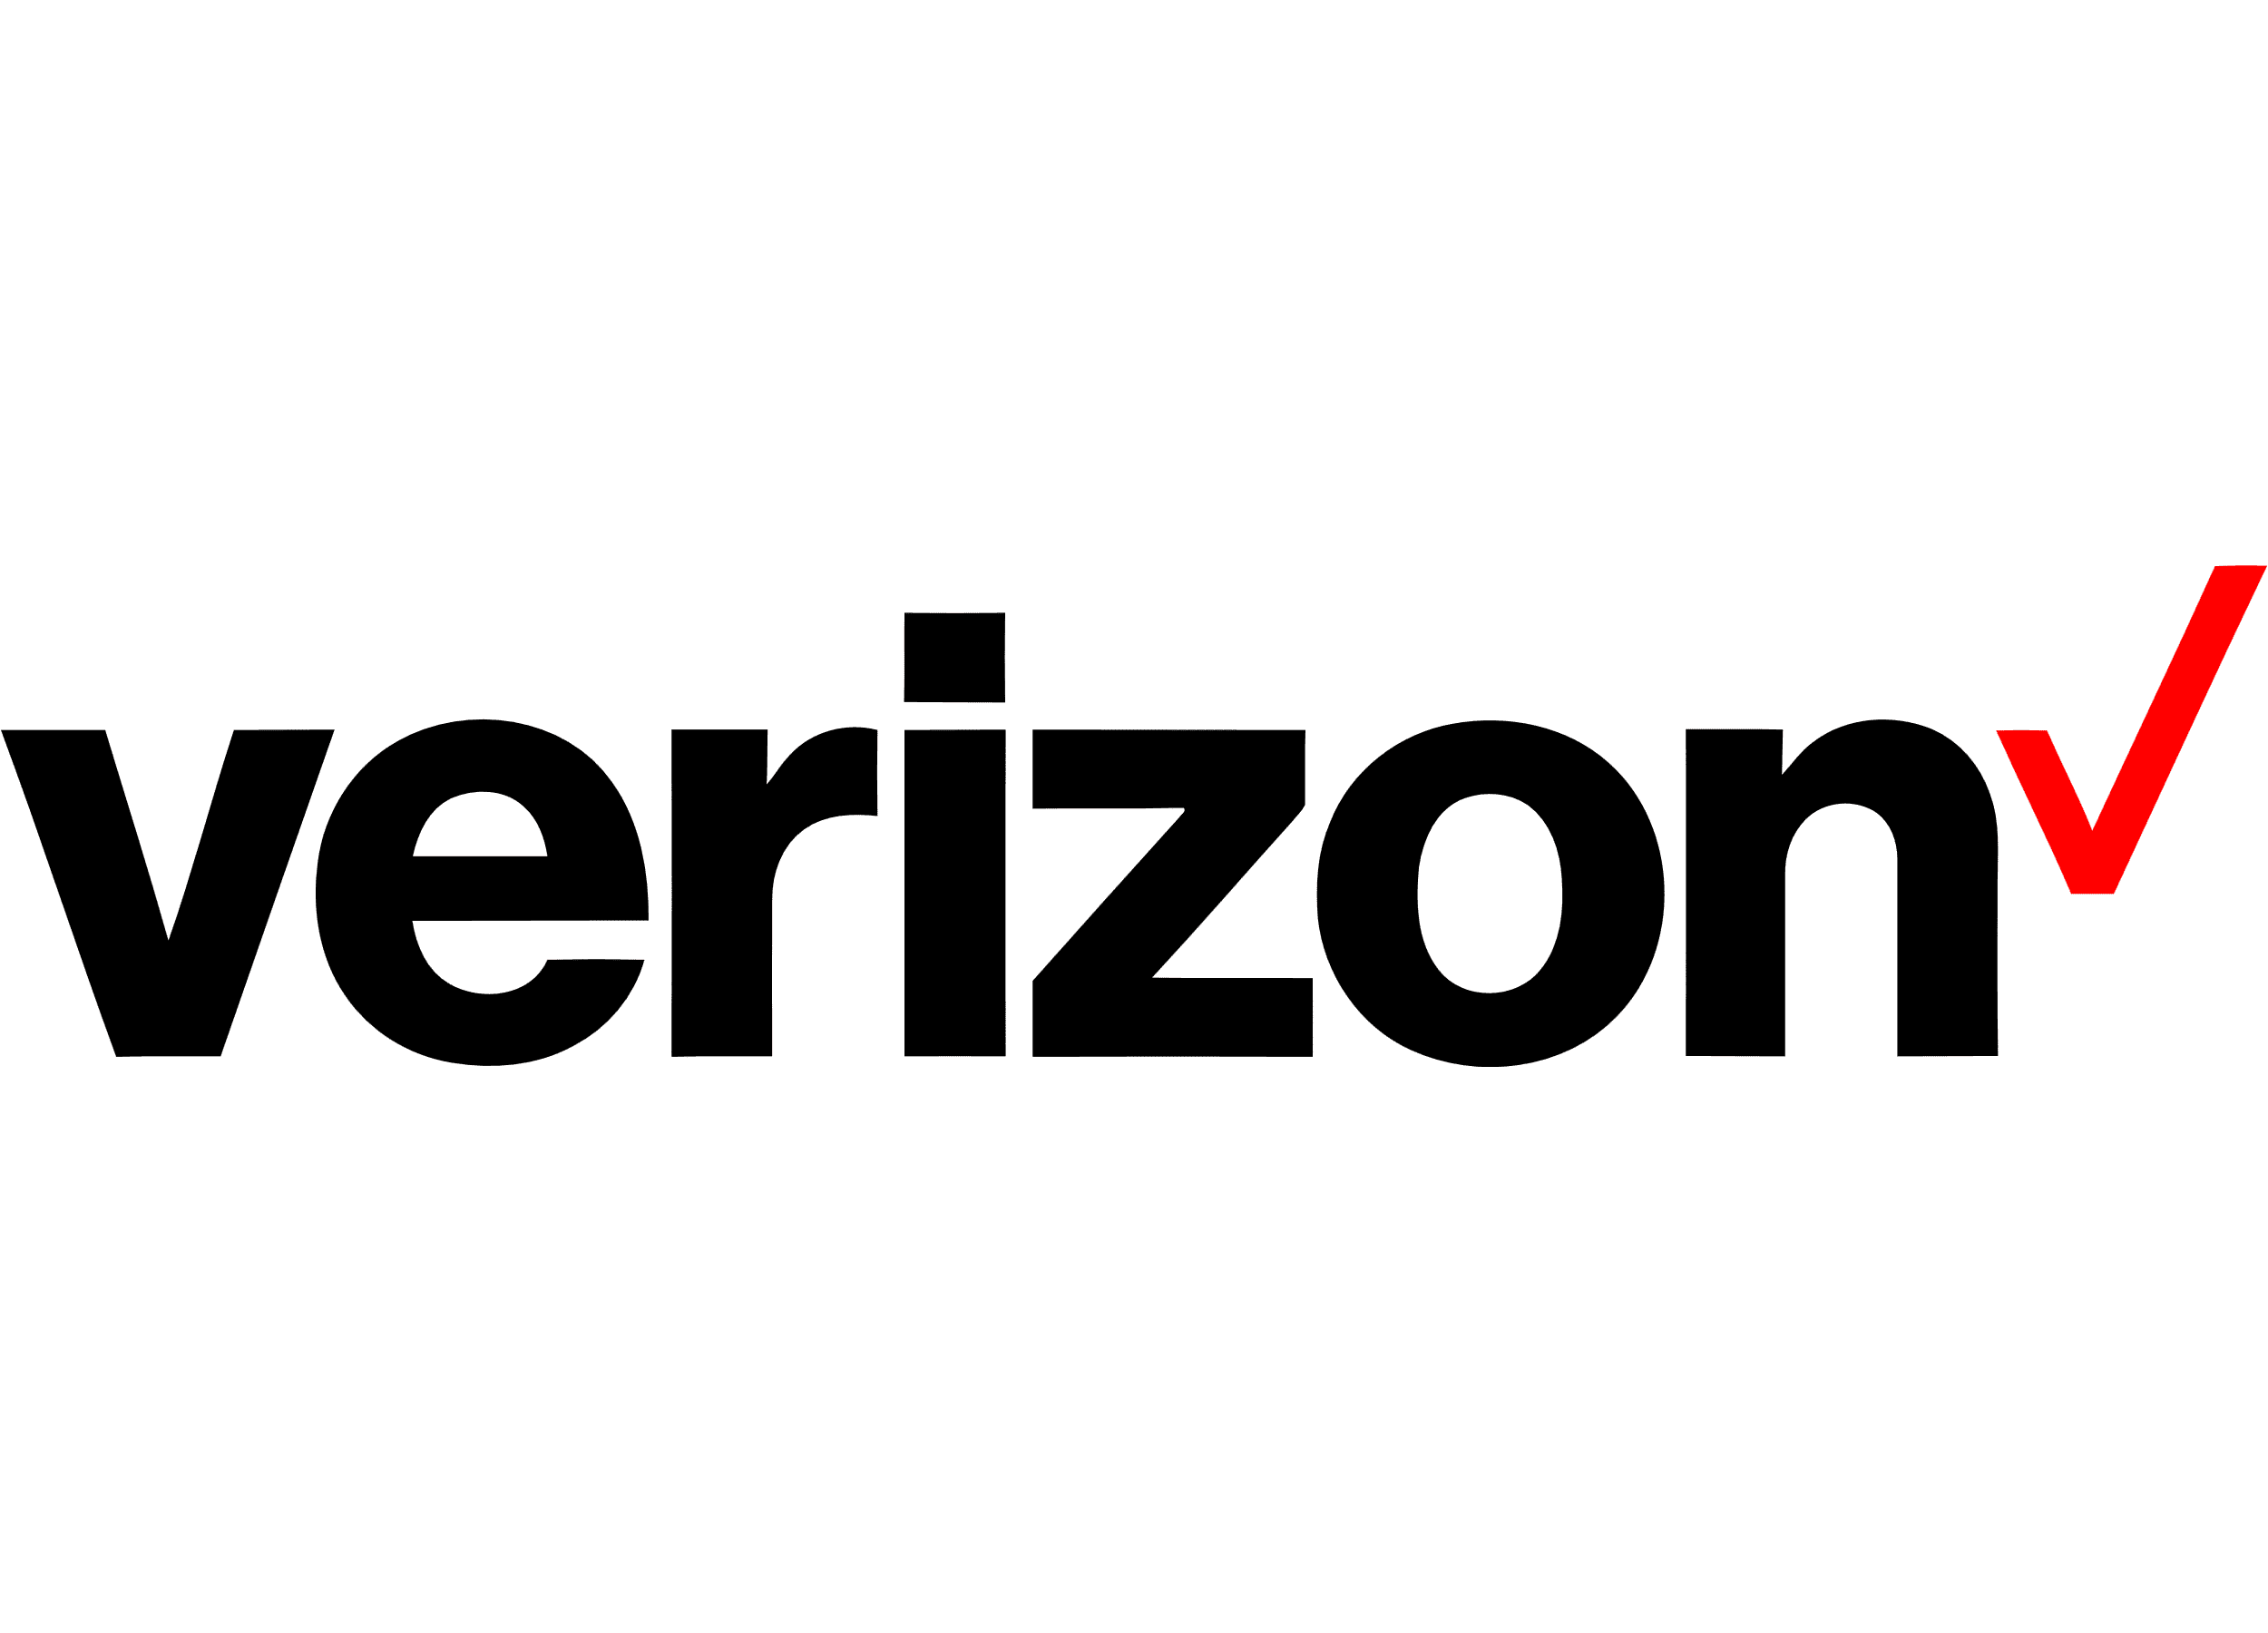 Verizon logo and symbol, meaning, history, PNG